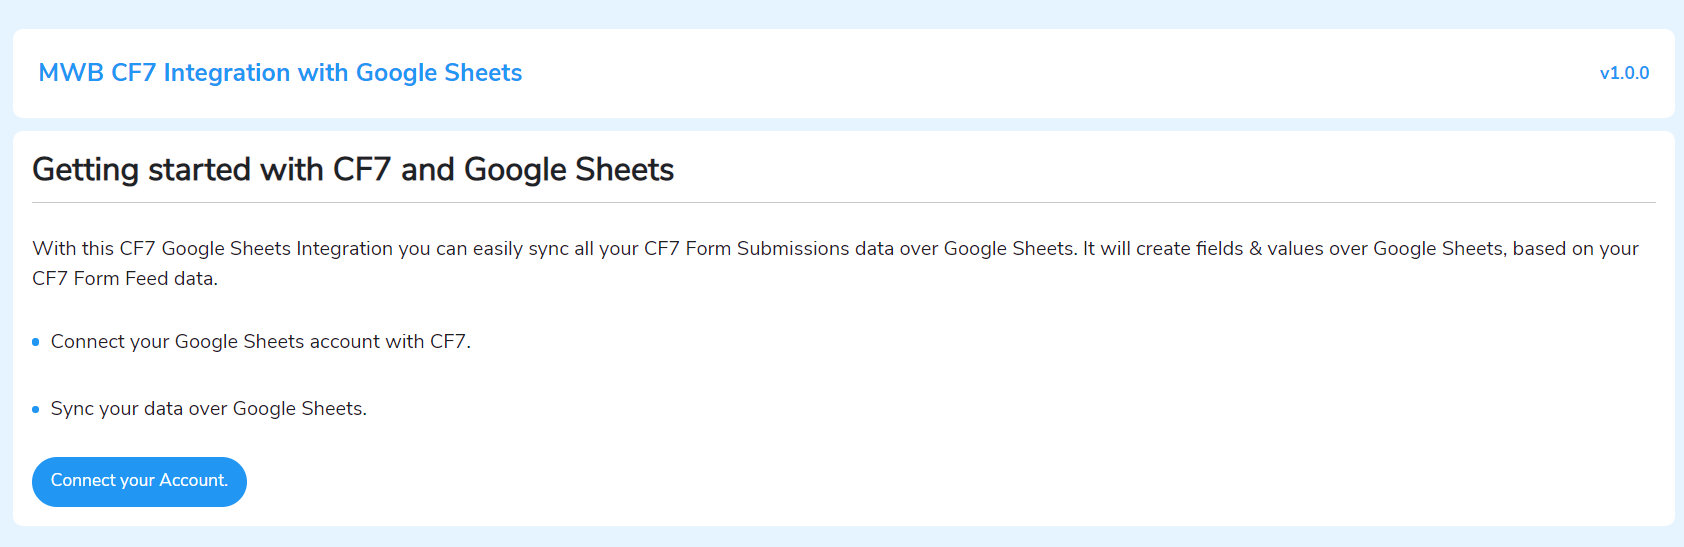 connecting with google sheets